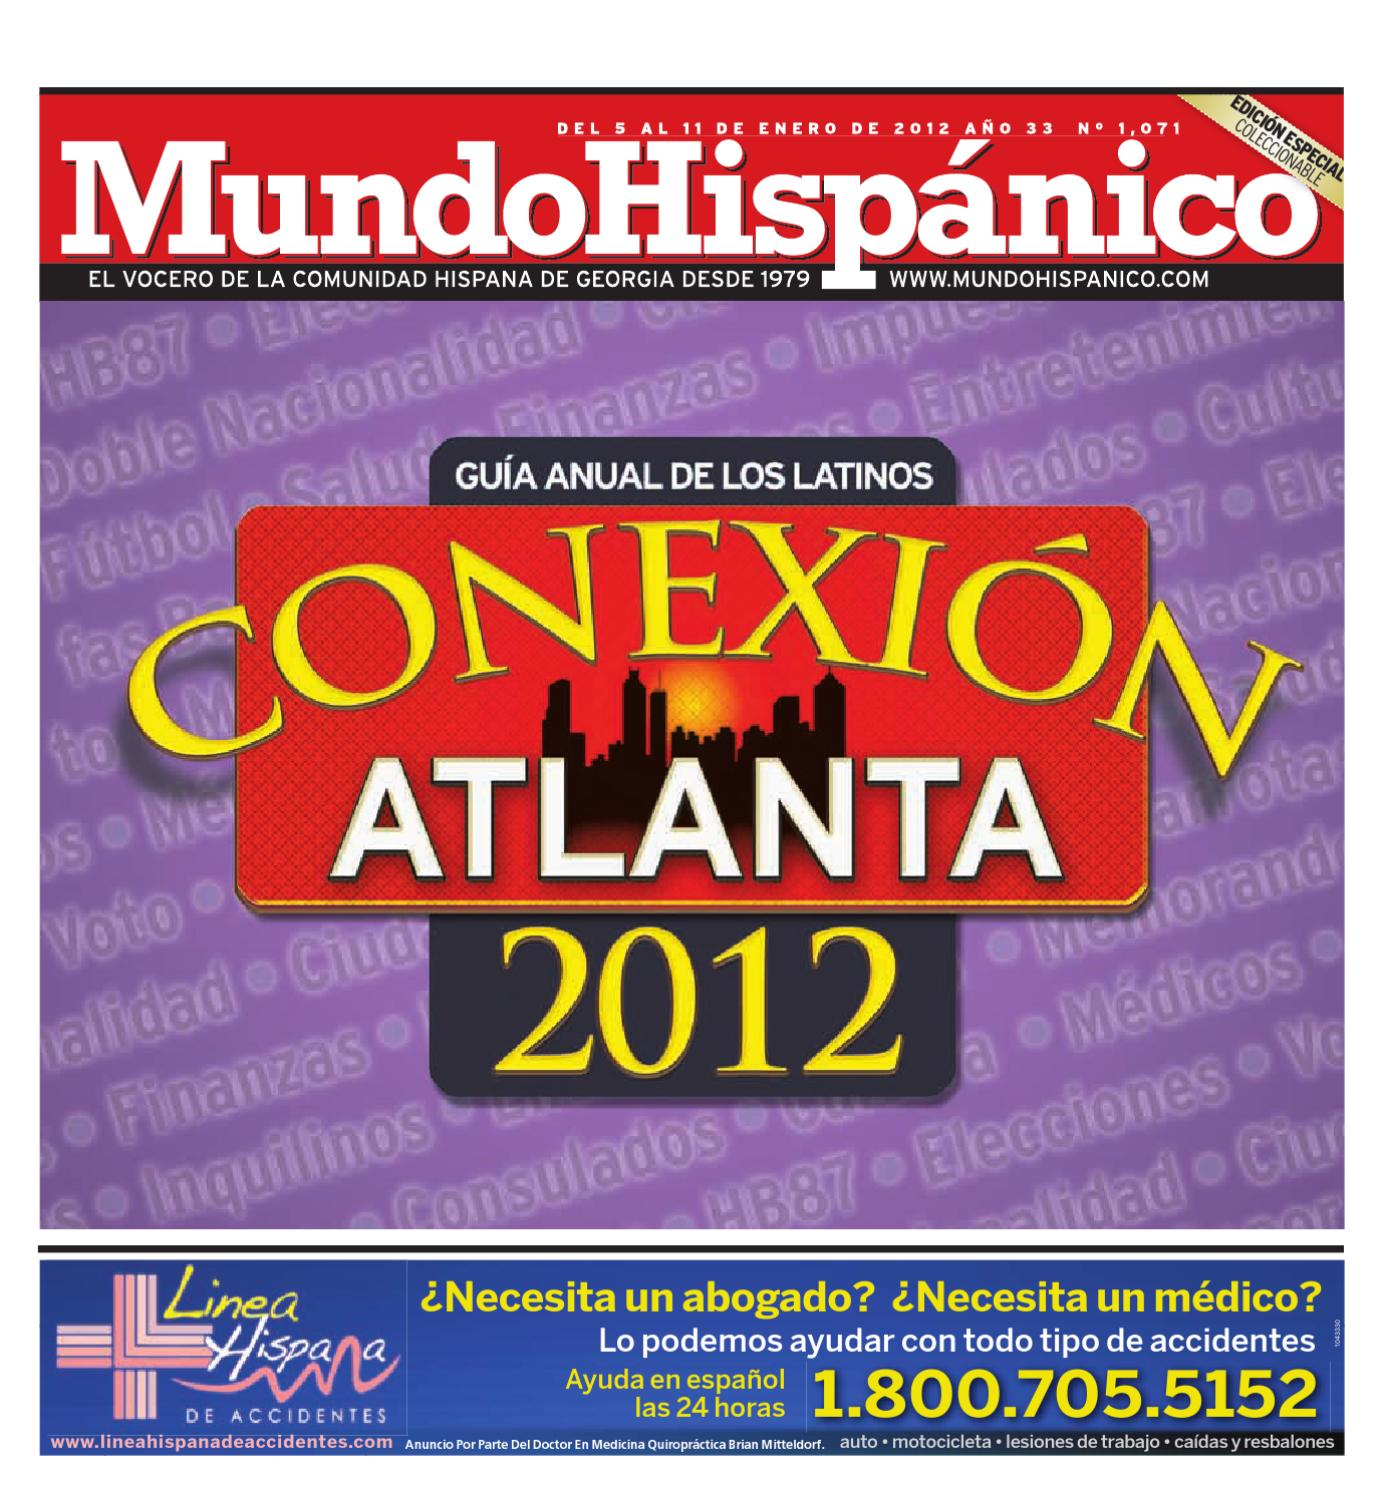 Mundo Hispanico 01-05-12 by MUNDO HISPANICO - issuu